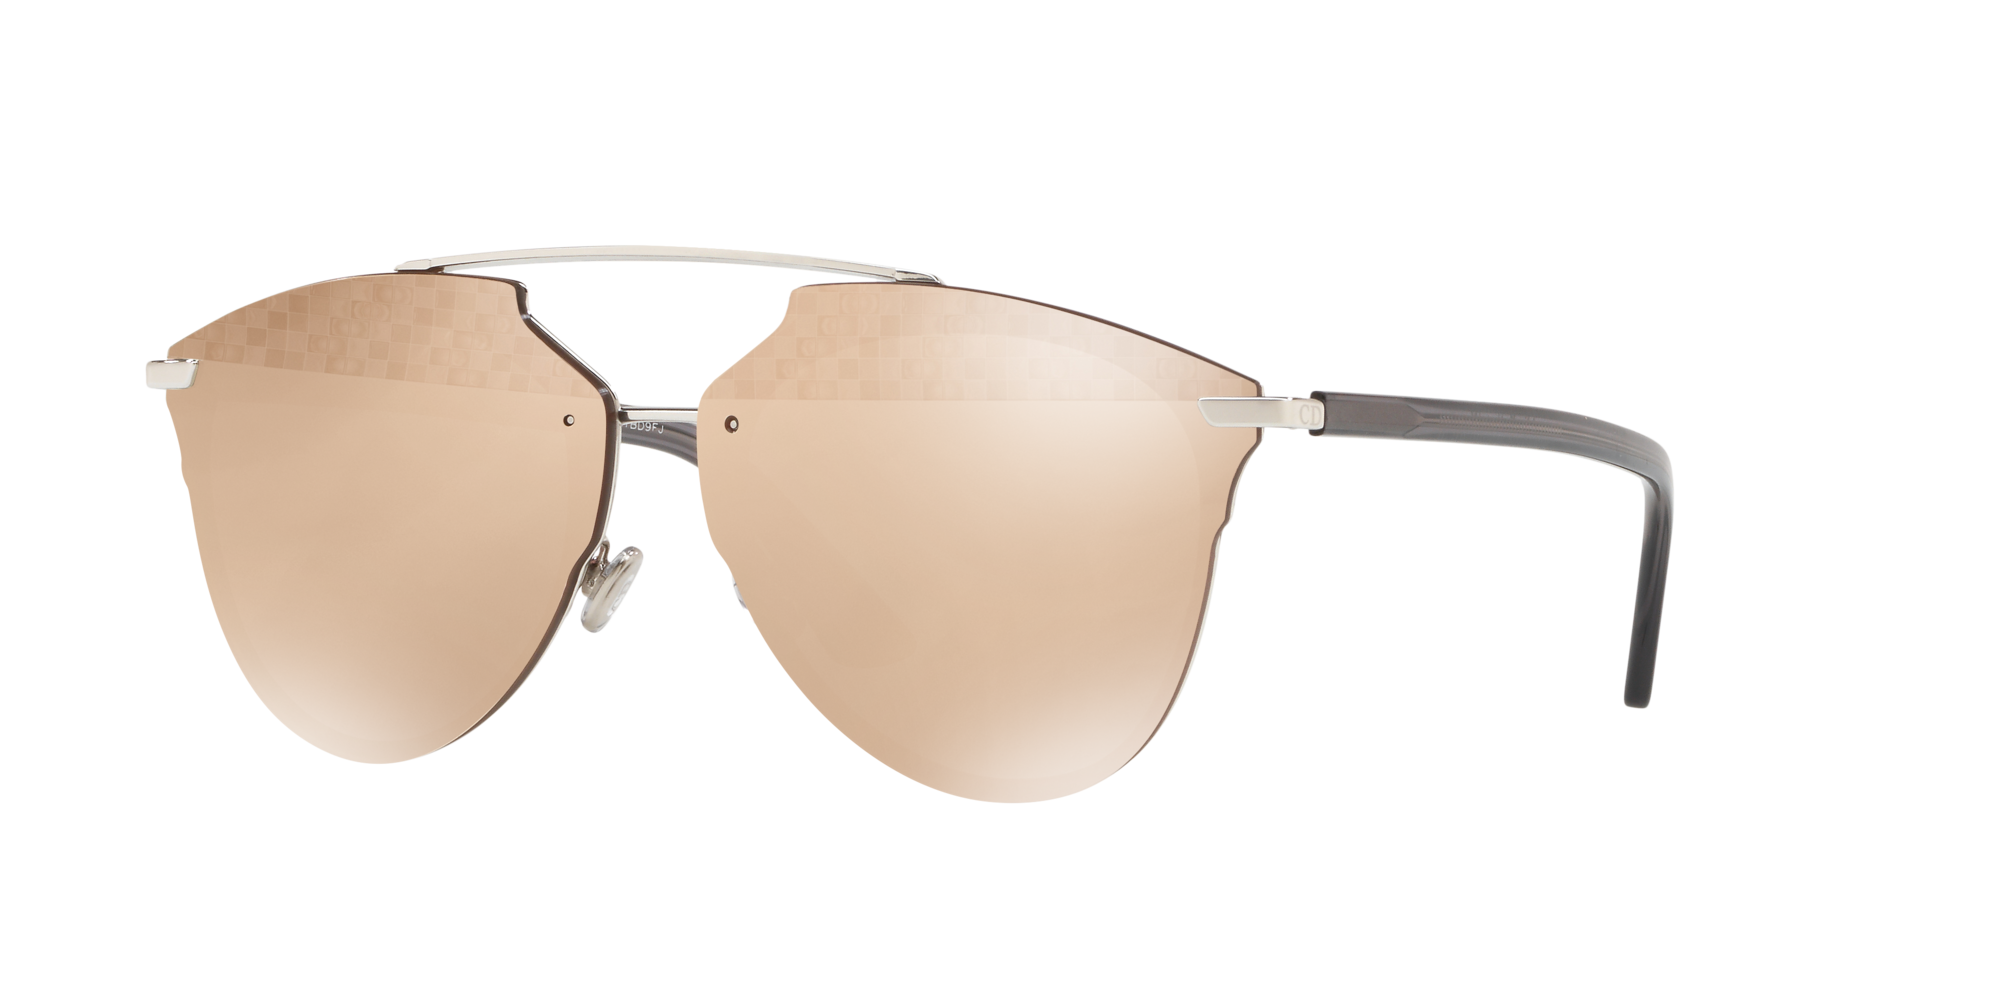 Dior Mann  CD000820 -  Frame color: Grau, Lens color: Gold, Size 63-11/140